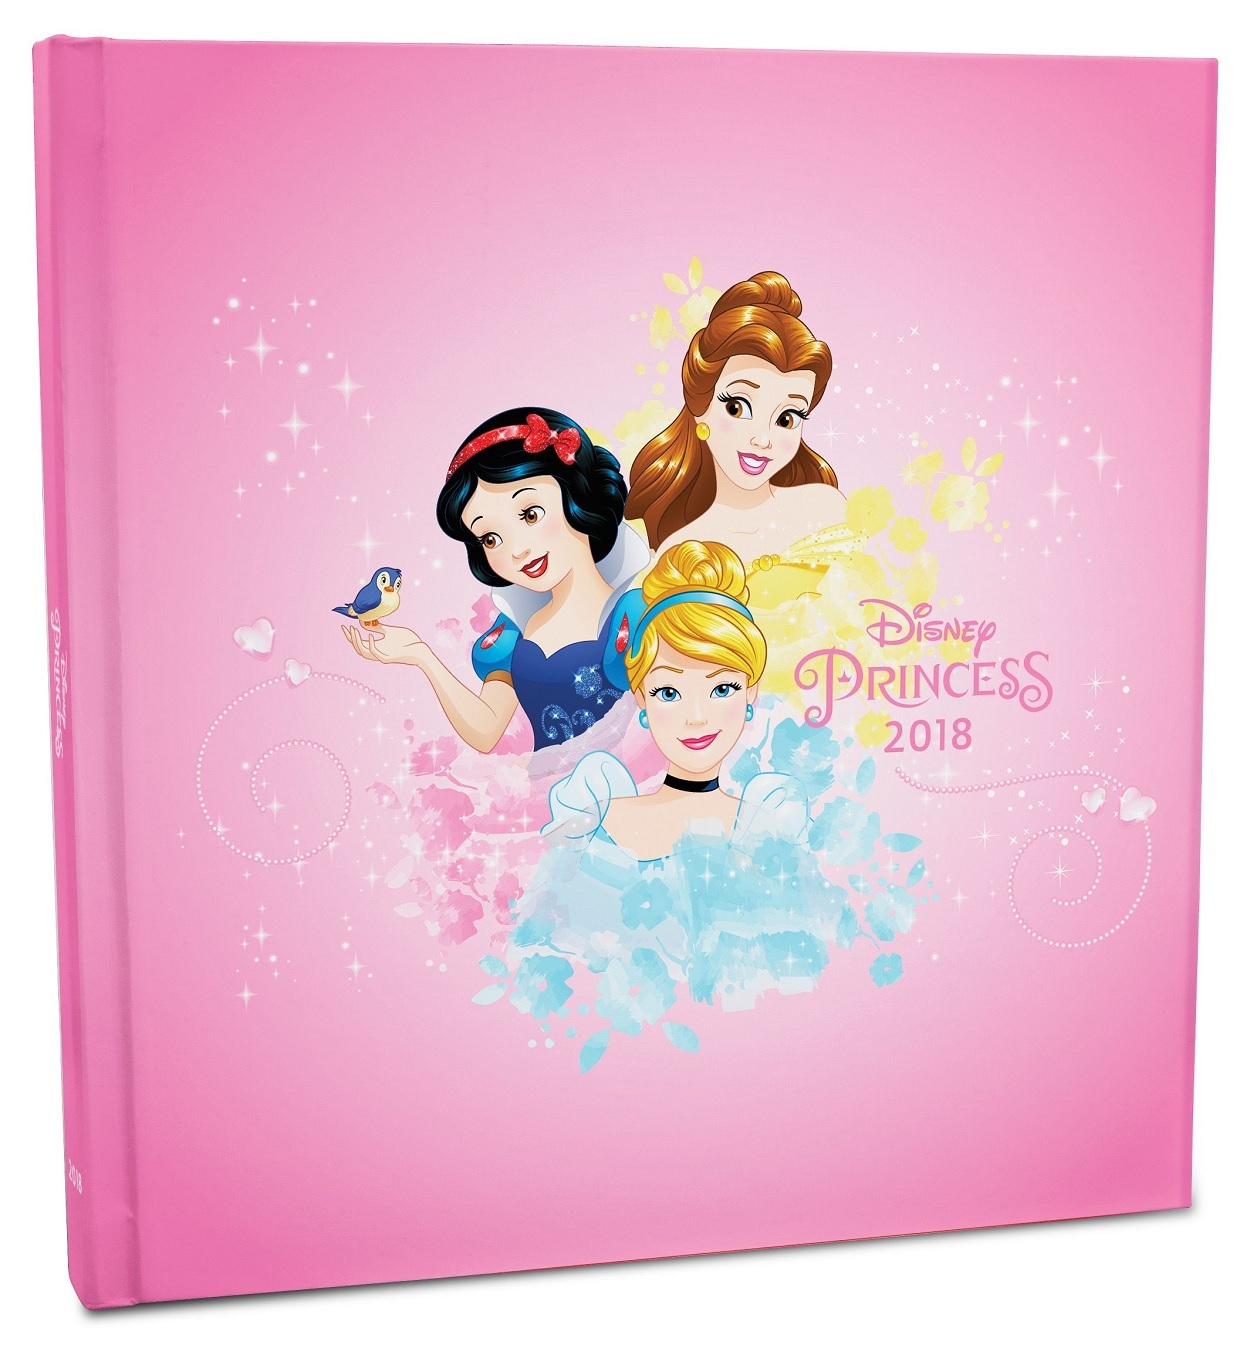 (LOT.W160.100.2018.30-00645.à.30-00669) 1 Dollar Niue 2018 5 g BU Ag - Disney princesses (closed album) (zoom)